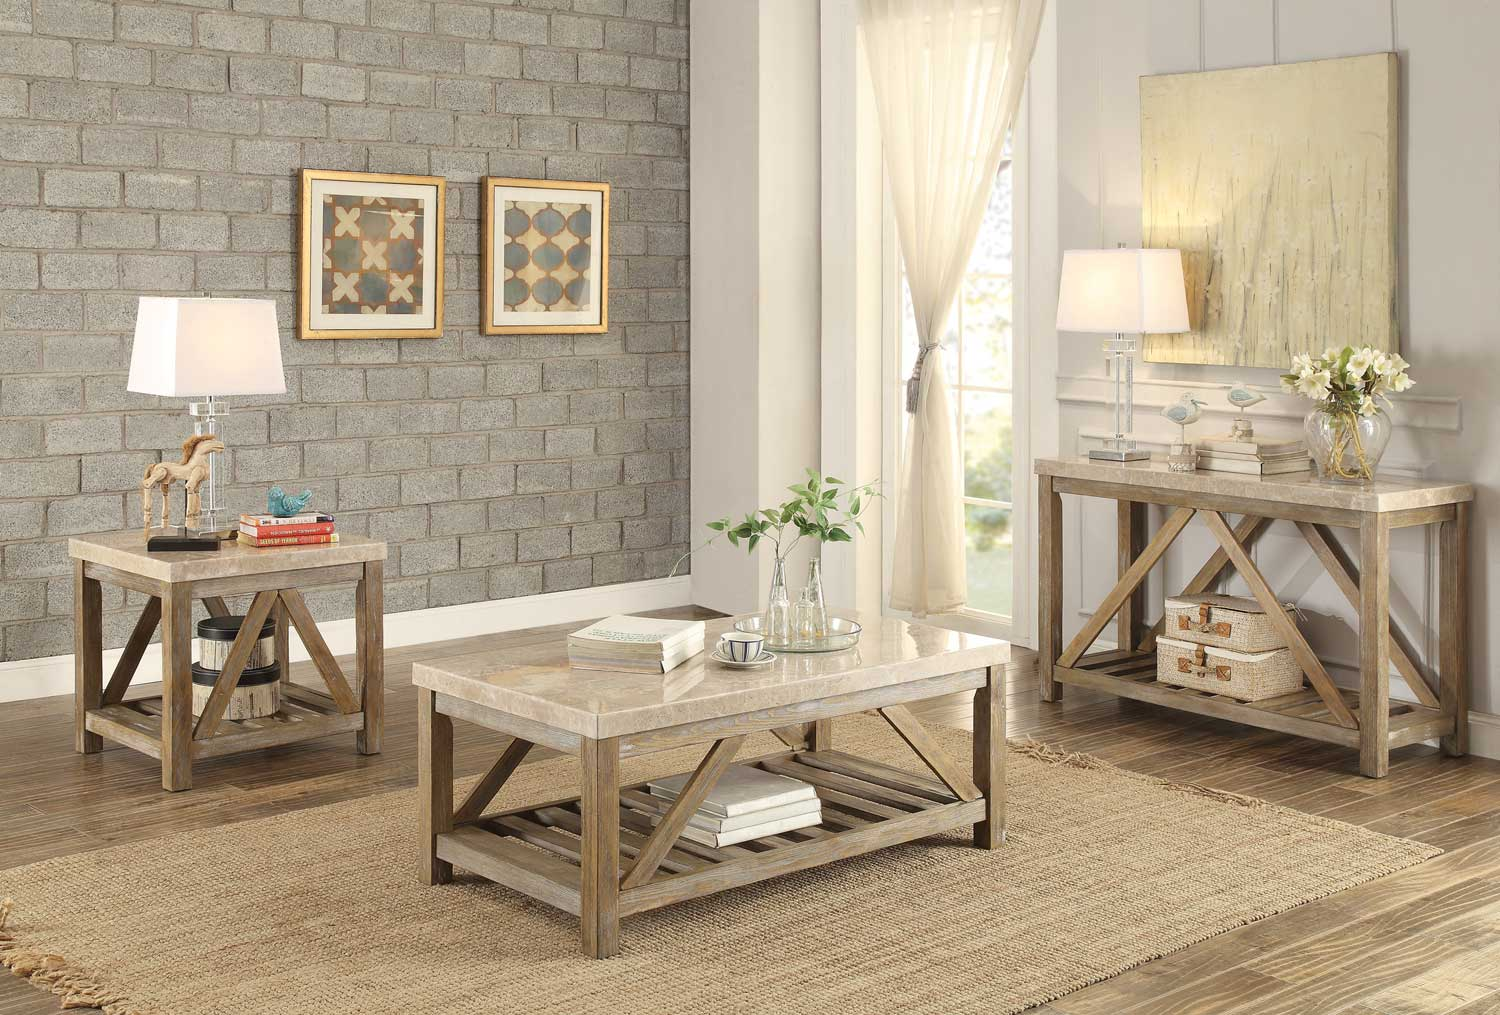 Homelegance Ridley Cocktail/Coffee Table Set - Weathered Wood Finish